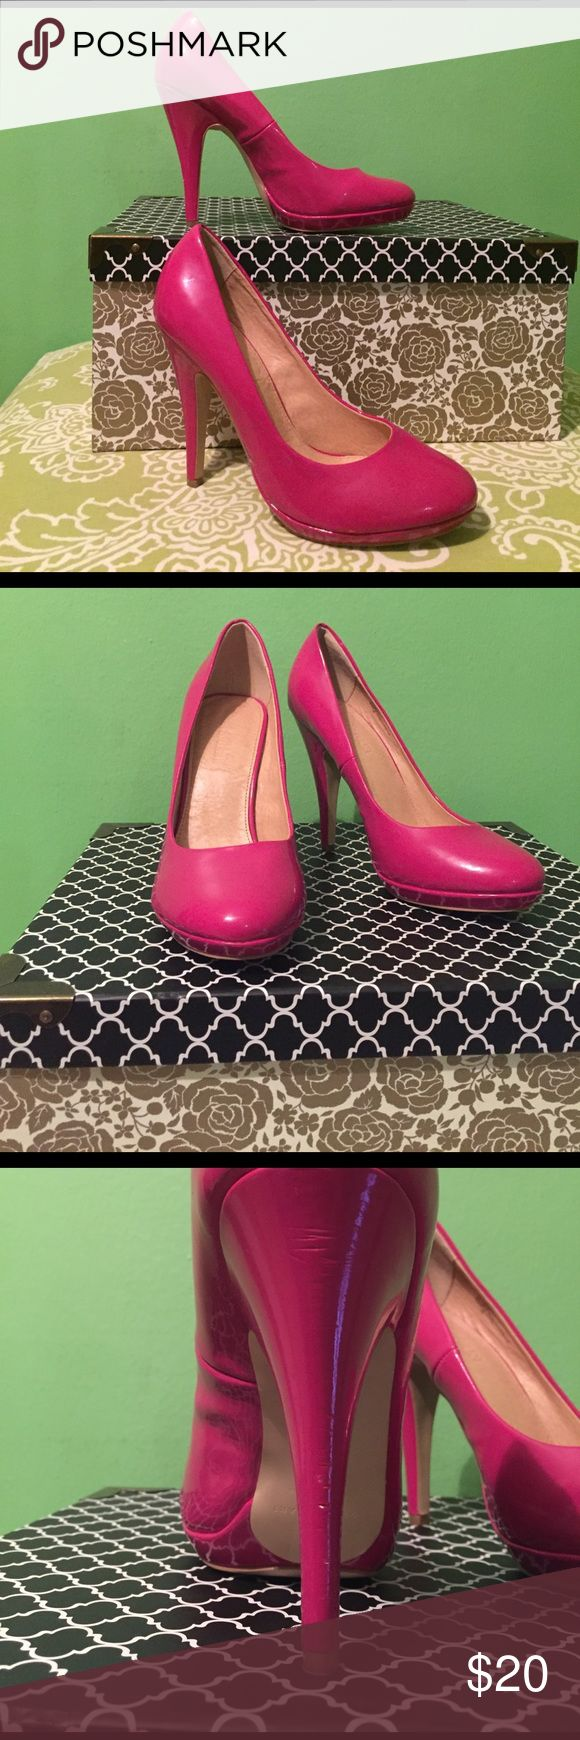 Colin Stuart Hot Pink Heels 👠 Worn only Once Colin Stuart Hot Pink Heels. A couple scuff marks on the Heel shown in photo. Other then that they are in Excellent Condition. Colin Stuart Shoes Heels